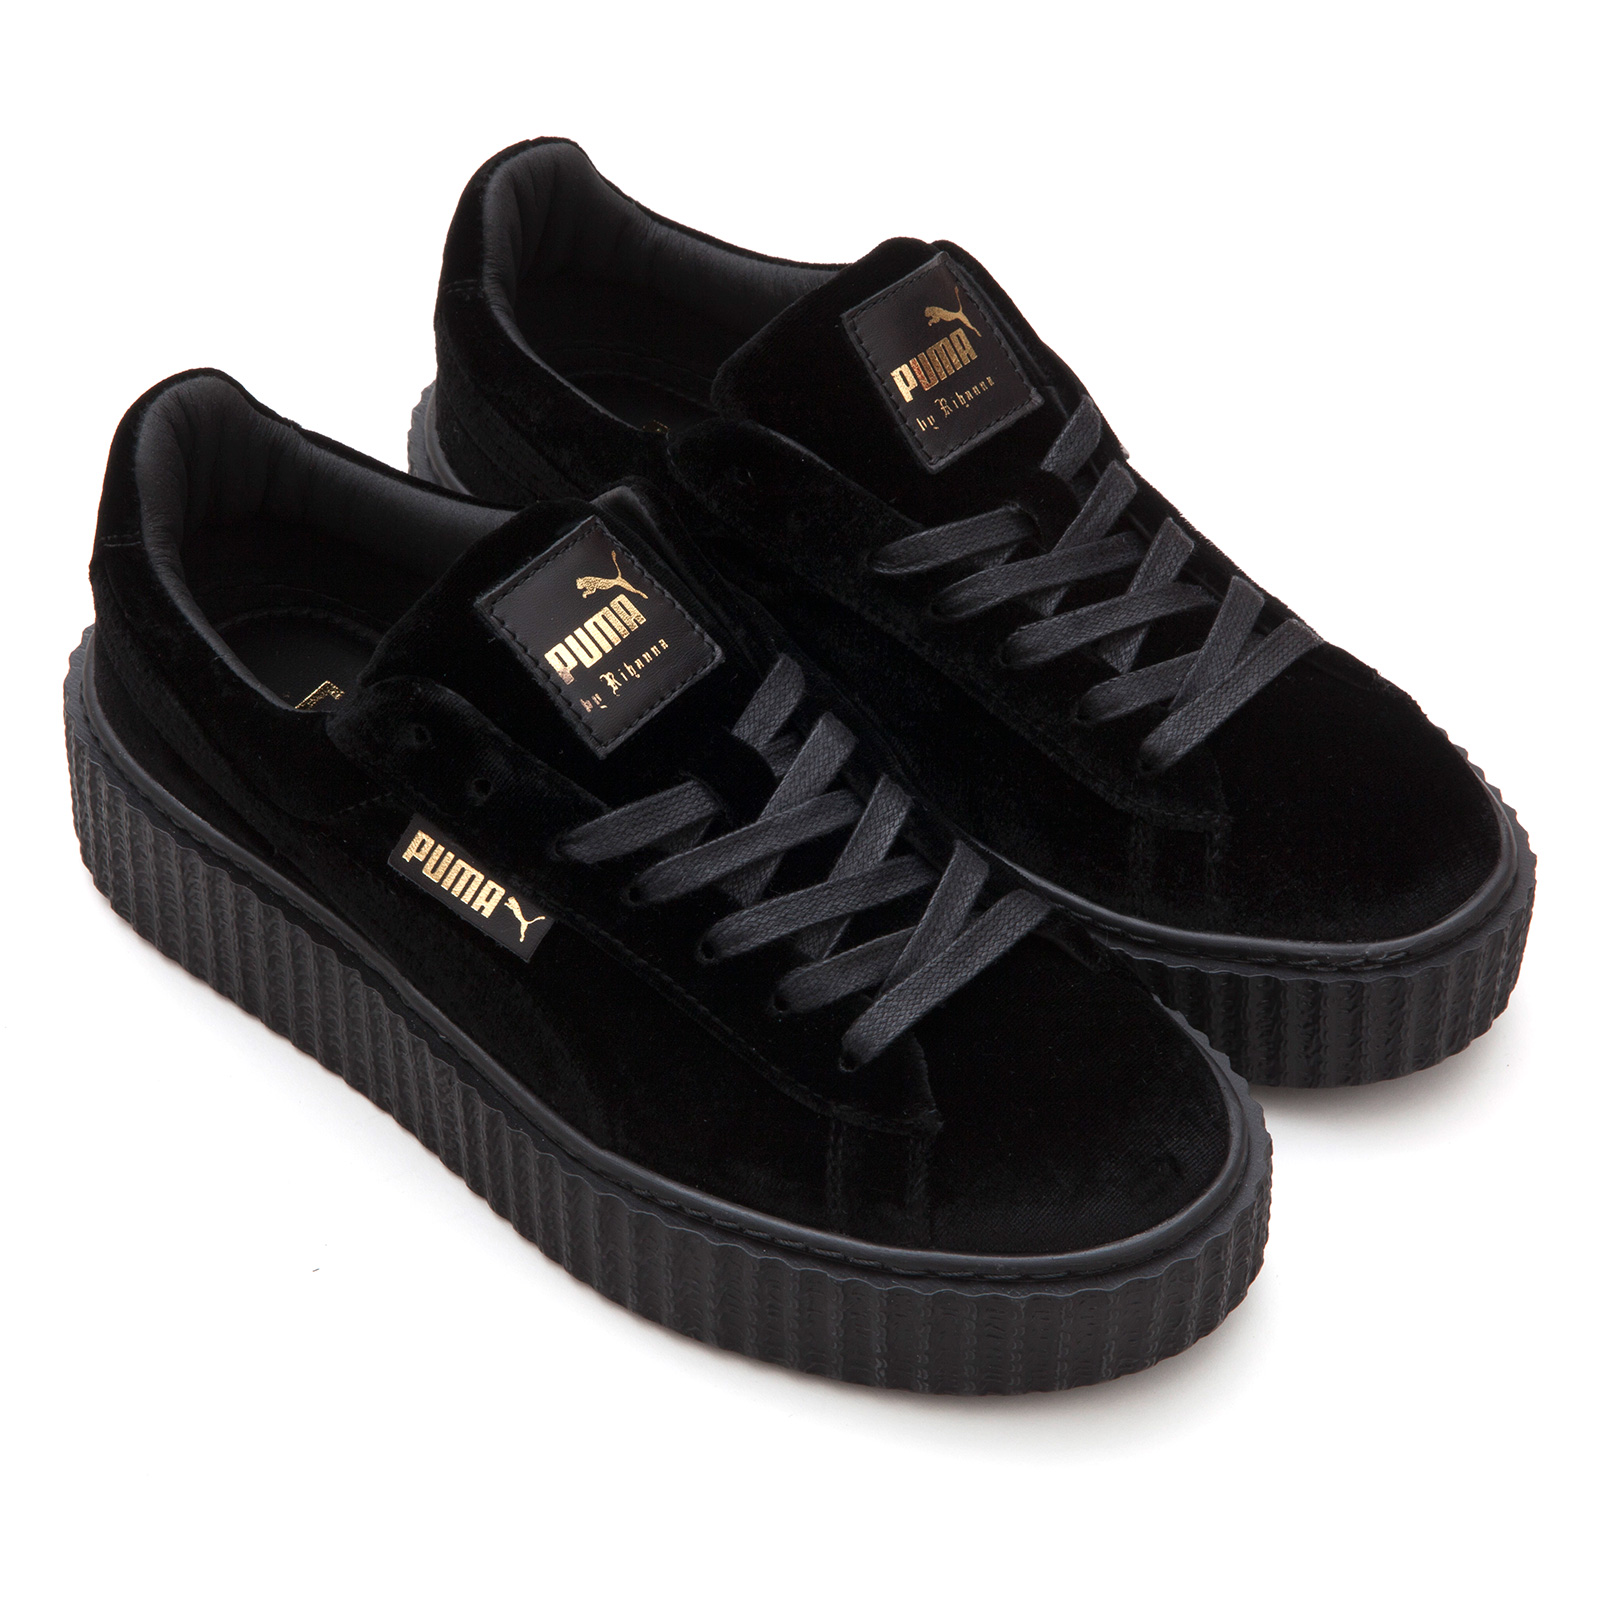 Puma by Rihanna Fenty Women s Creepers Velvet Black Shoes on Storenvy c529db424